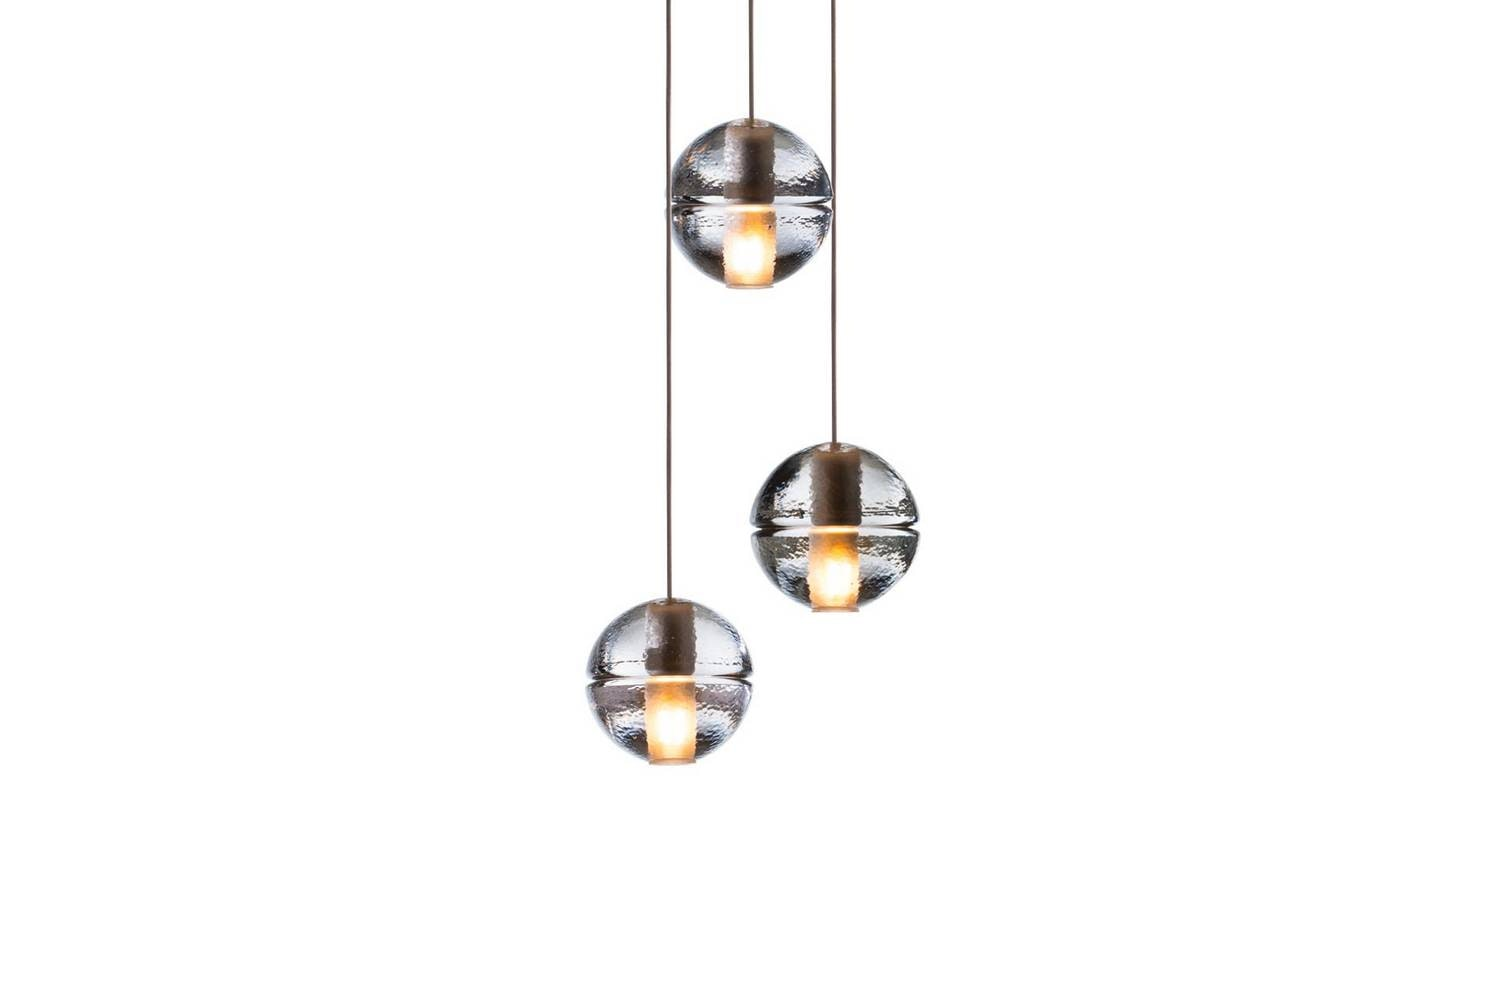 14.3 Standard Suspension Lamp by Omer Arbel for Bocci